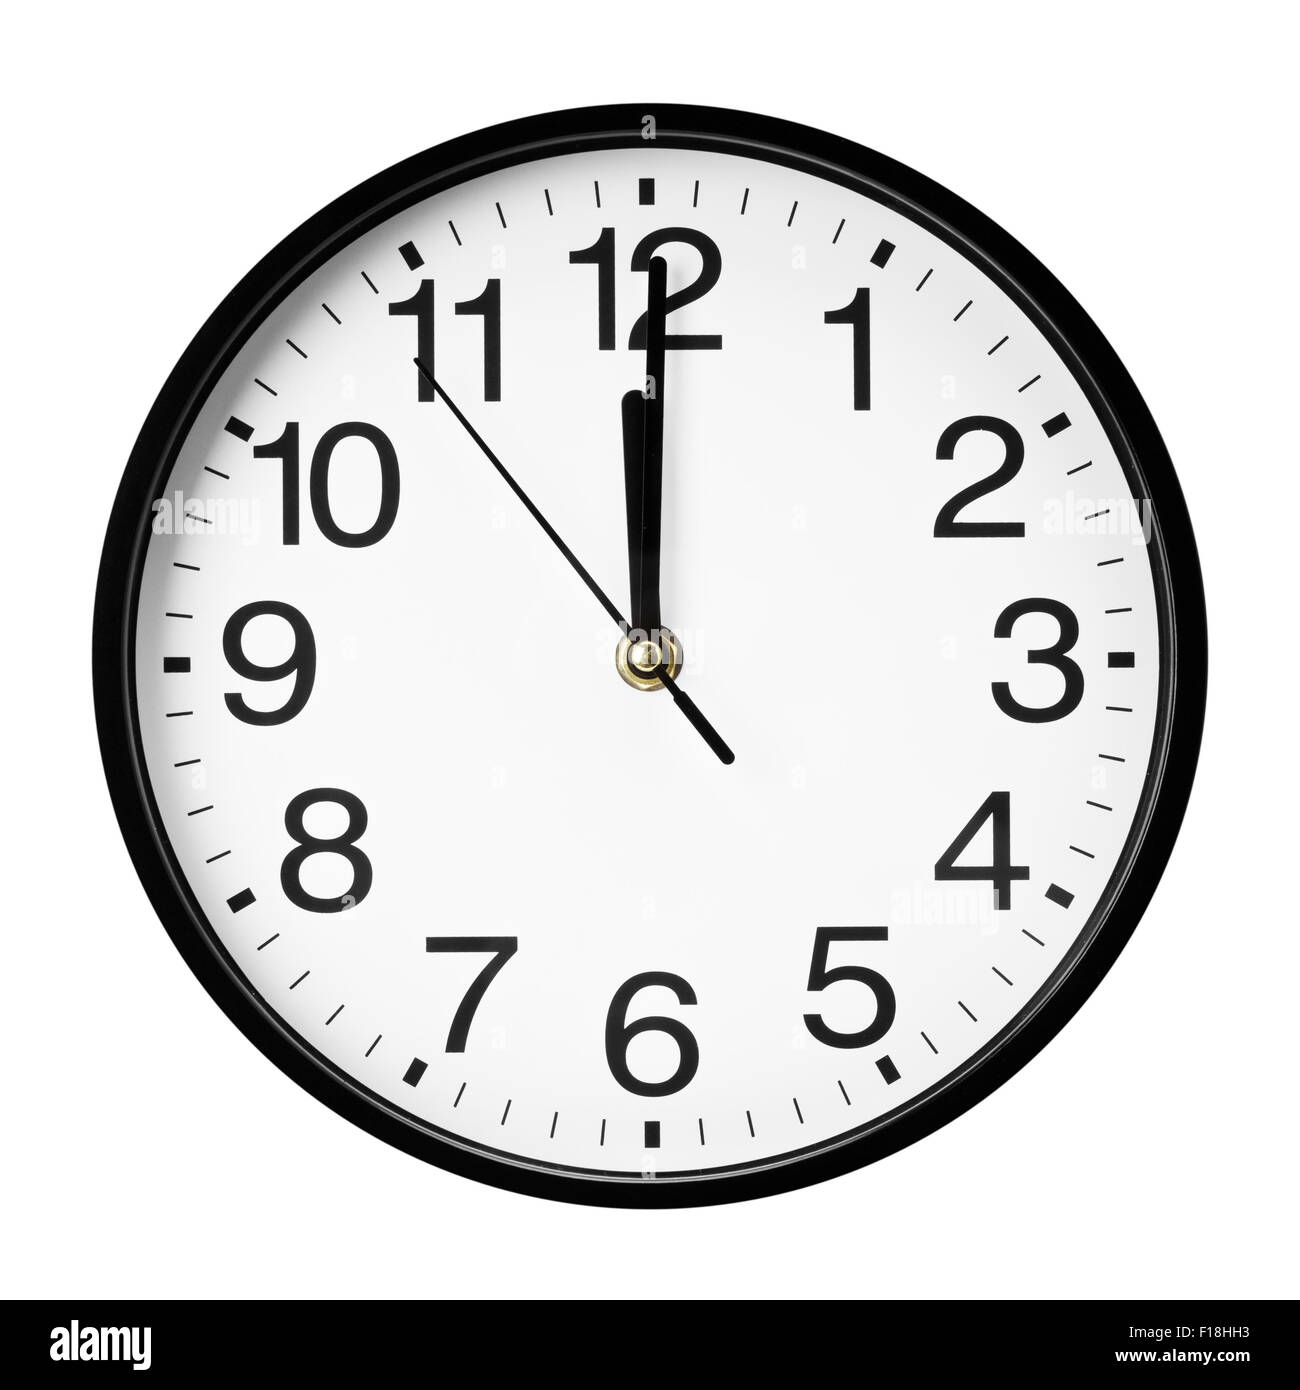 wall clock isolated on white background. - Stock Image